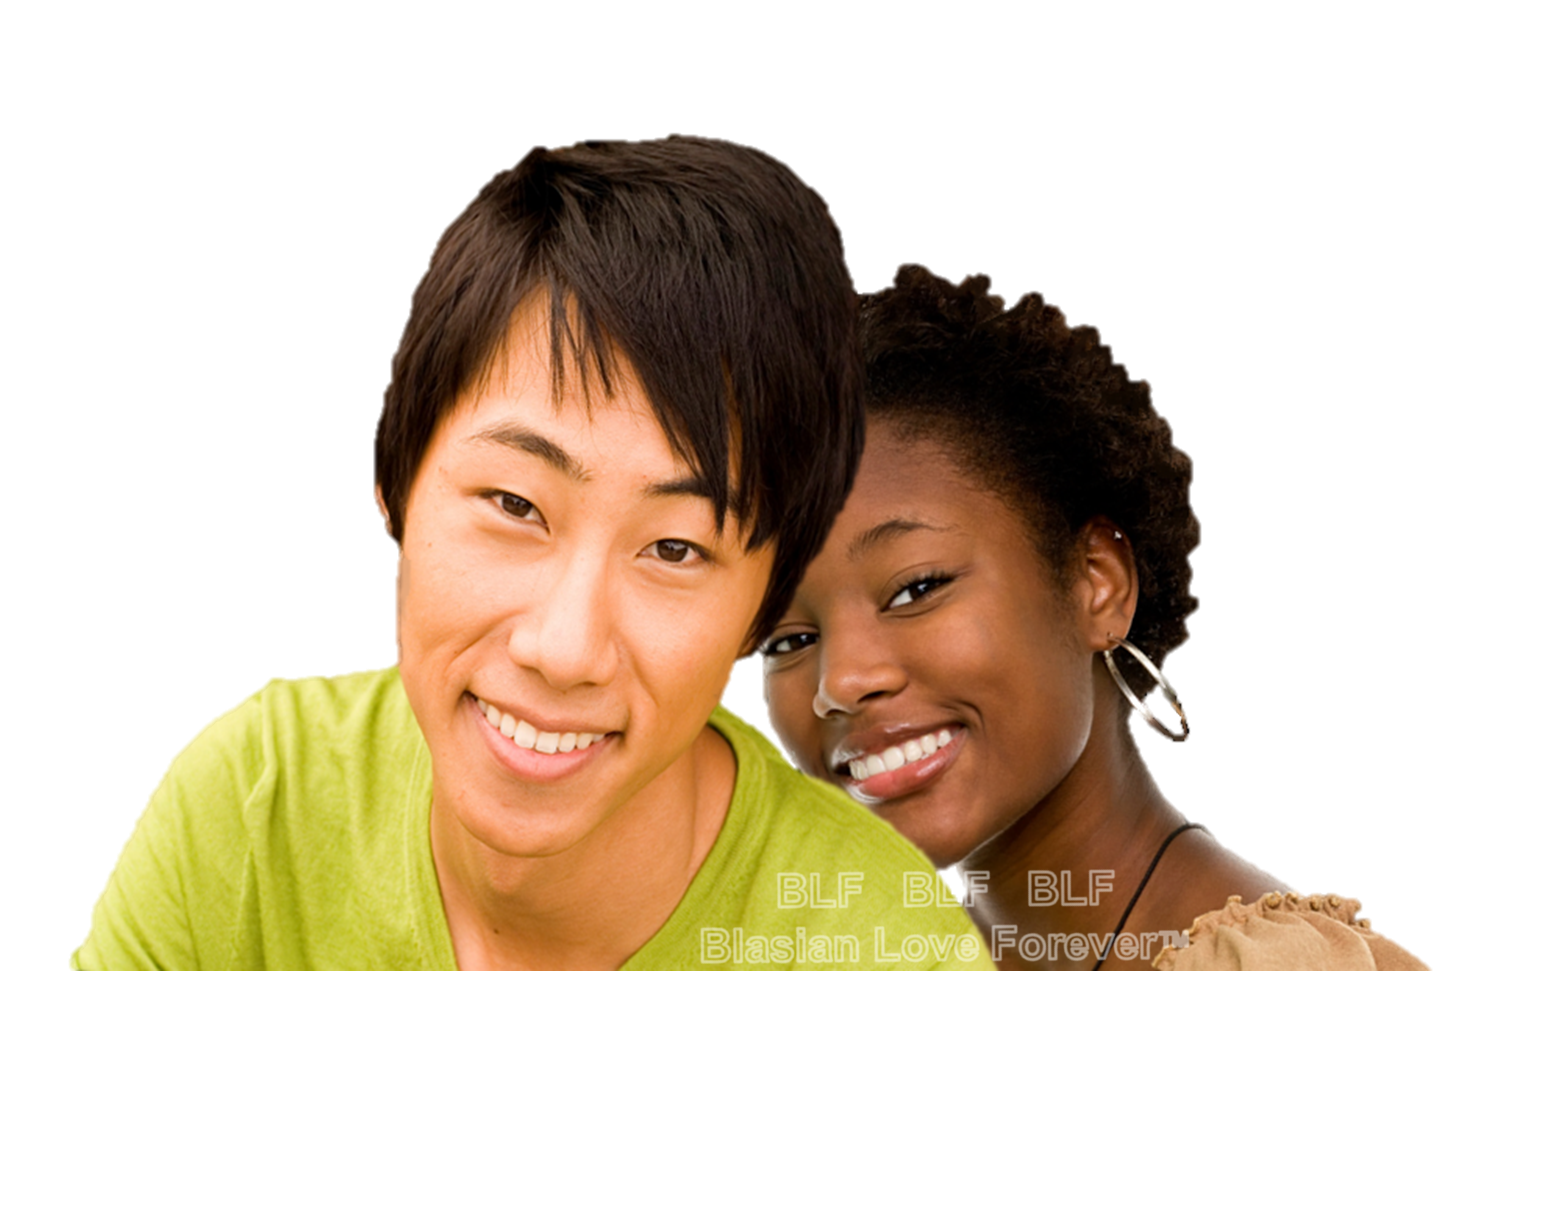 ida black women dating site Date black men & asian women blasian luv forever™ is the #1 bmaw dating website on the planet bmaw dating: quality matches for friendship & marriage.